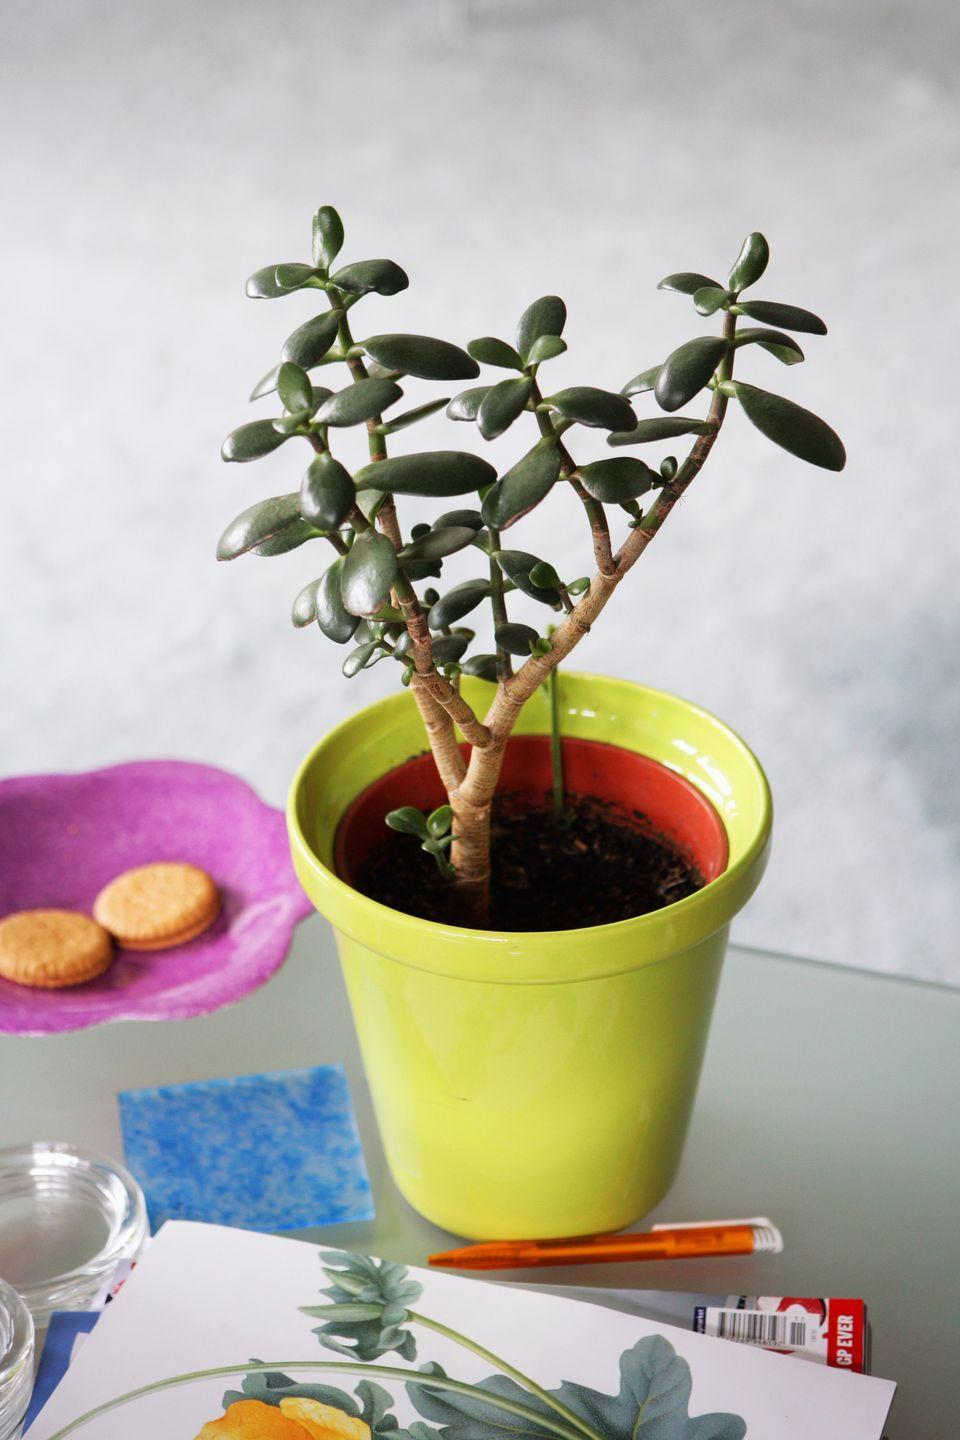 """<p><a class=""""link rapid-noclick-resp"""" href=""""https://www.amazon.com/Crassula-Succulent-Garden-Plant-Guide/dp/B07FN9P13V?tag=syn-yahoo-20&ascsubtag=%5Bartid%7C10057.g.3716%5Bsrc%7Cyahoo-us"""" rel=""""nofollow noopener"""" target=""""_blank"""" data-ylk=""""slk:BUY NOW"""">BUY NOW</a> <strong><em>$10, amazon.com</em></strong></p><p>These plants only require <a href=""""http://www.almanac.com/plant/jade"""" rel=""""nofollow noopener"""" target=""""_blank"""" data-ylk=""""slk:medium light"""" class=""""link rapid-noclick-resp"""">medium light</a> for a few hours every day, so they can sit just about anywhere in your office. Since the soil should dry out before you water them, we recommend taking a second to test the moisture when you walk in every morning.</p>"""